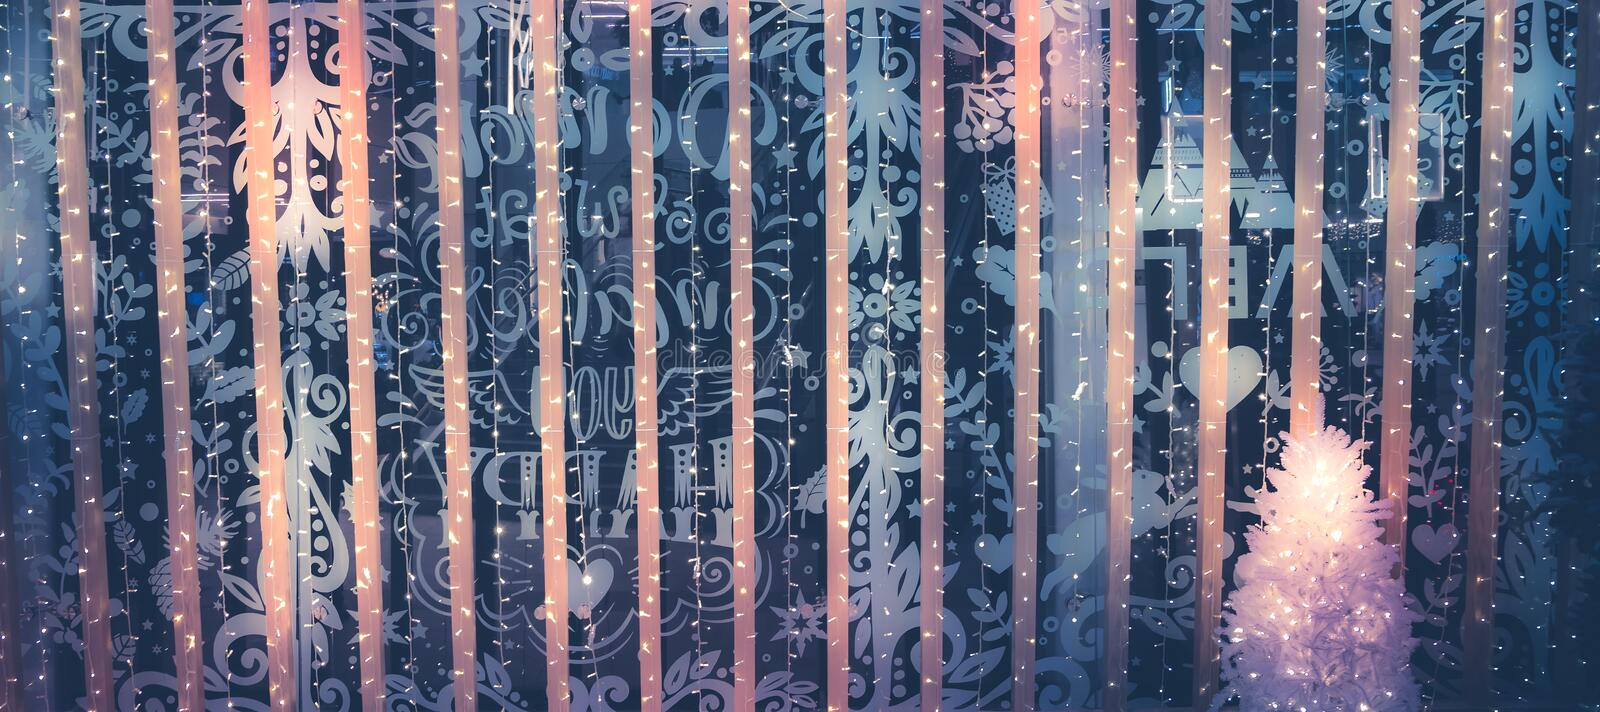 Christmas Winter night vintage background with Christmas lights and Christmas tree in gradient dark blue pink lilac colors royalty free stock image